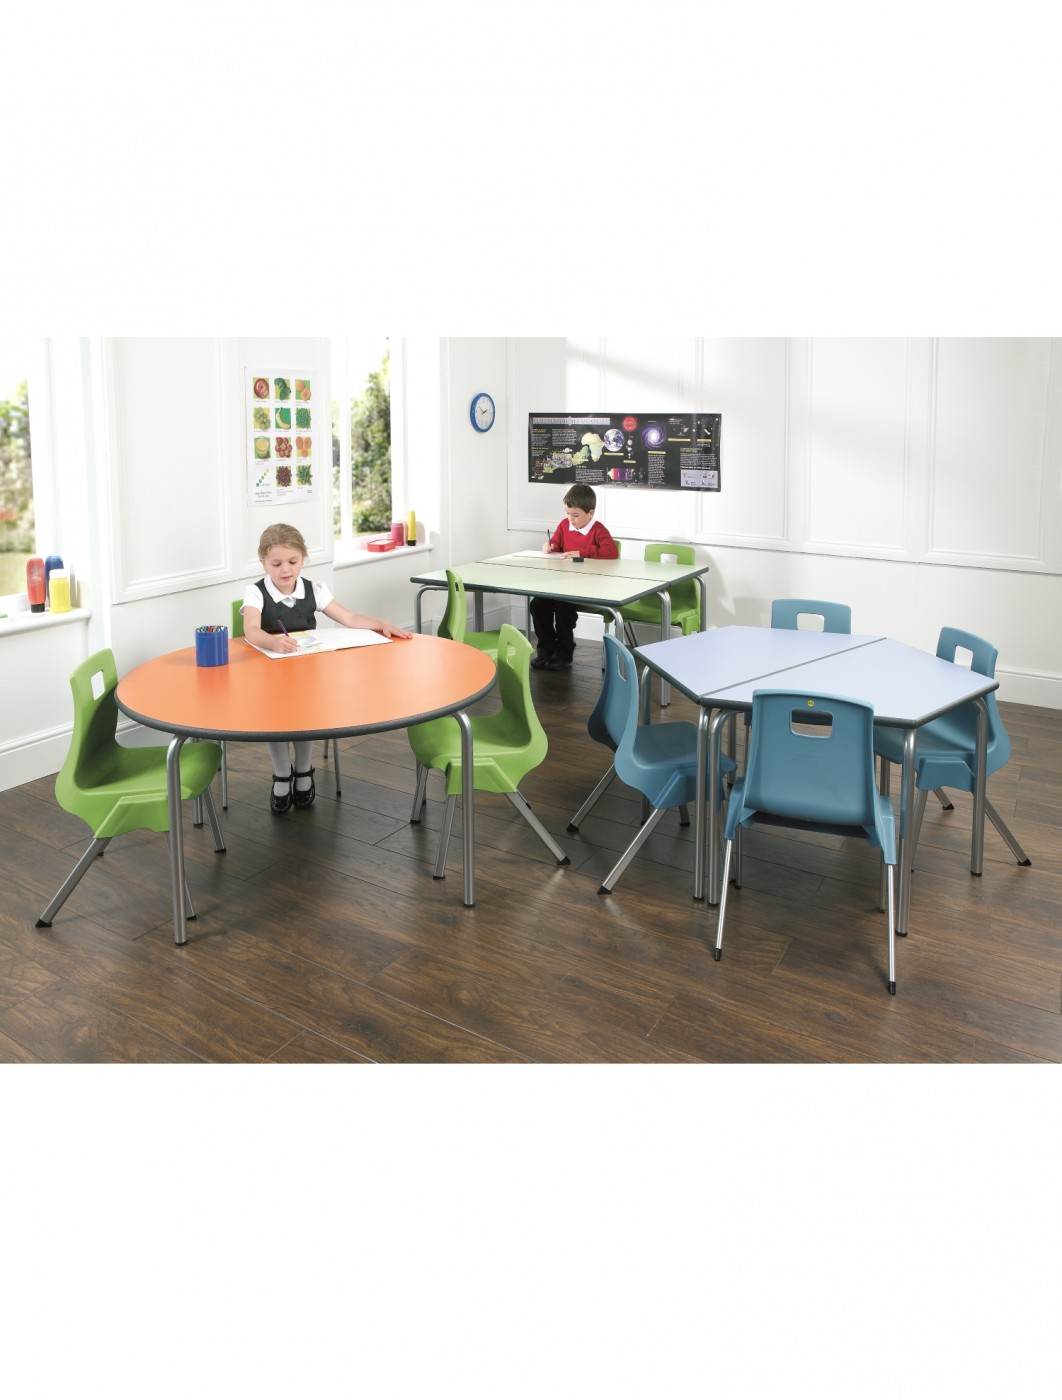 Classroom Tables - 600x600mm Square Equation Tables EQUPR-66-PS